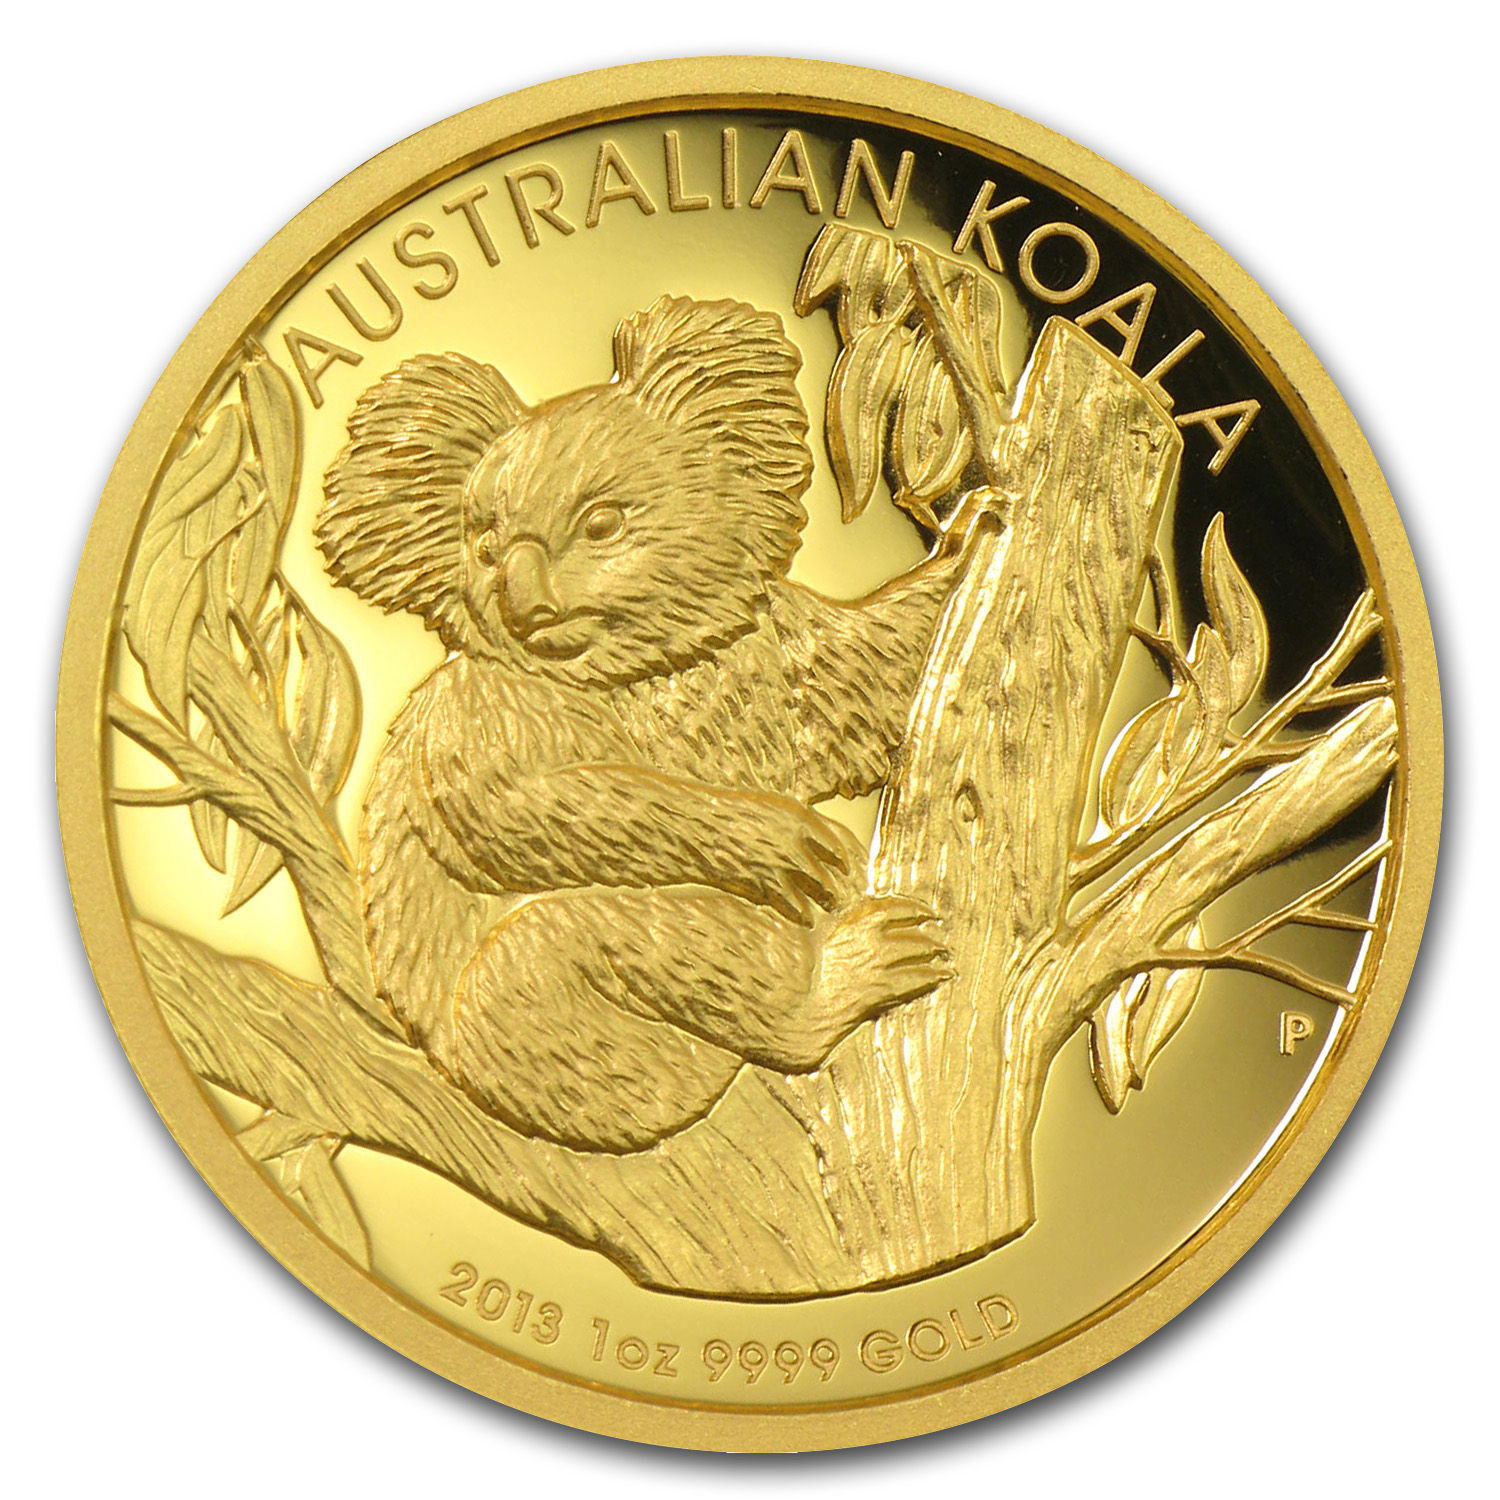 2013-P Australia 1 oz Gold Koala Proof (High Relief, Box & COA)